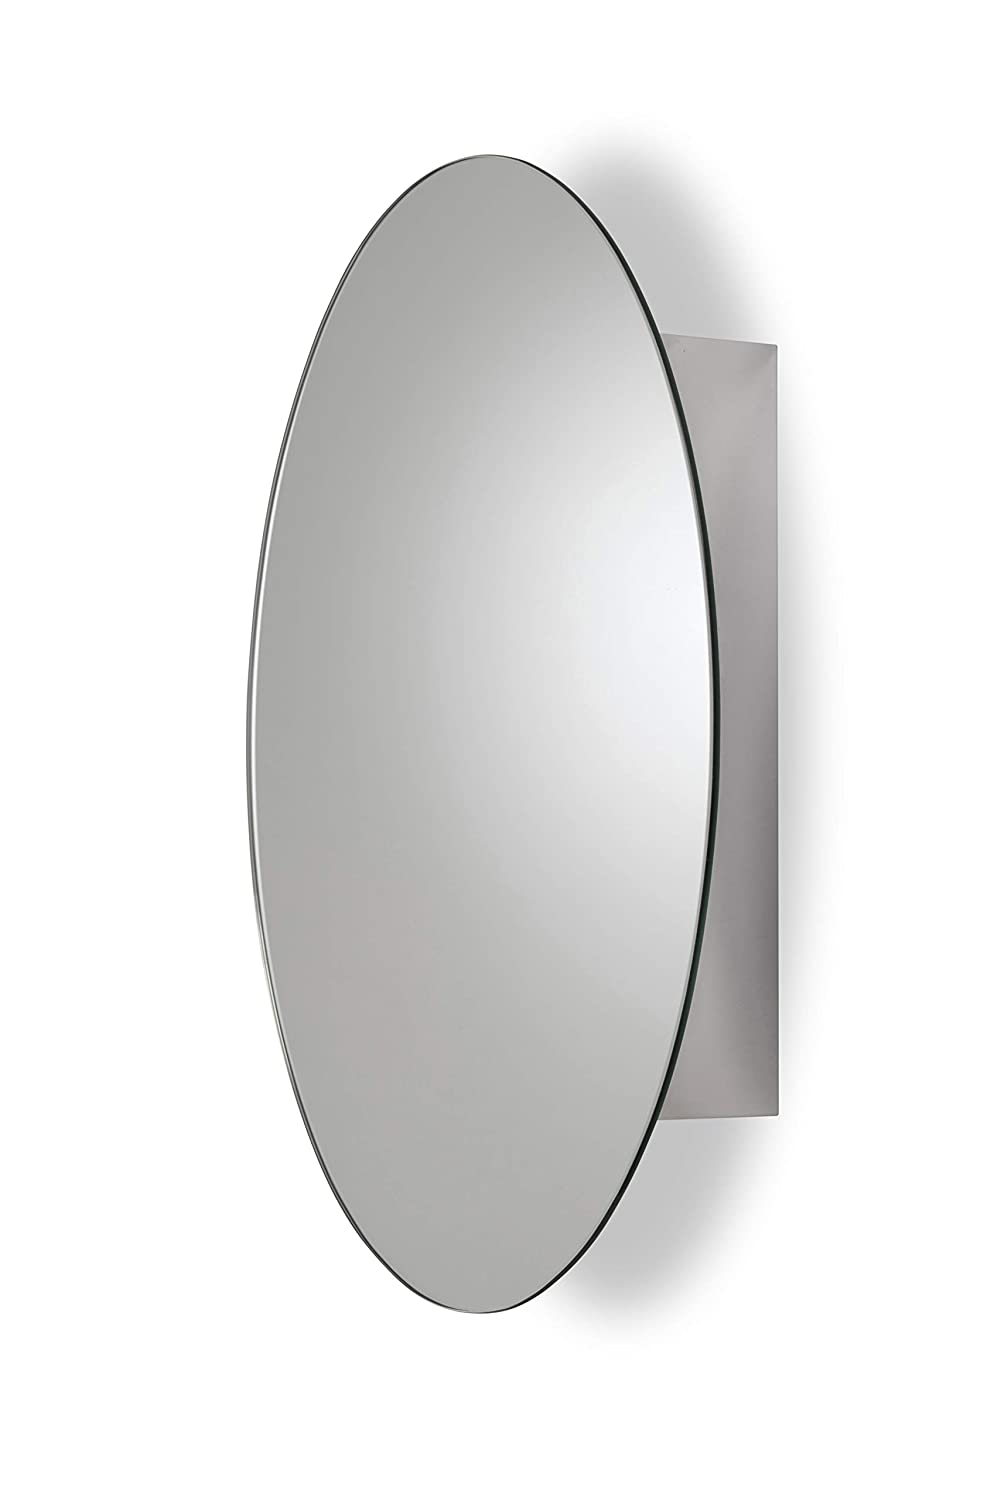 Croydex WC870105AZ Tay Stainless Steel Oval Medicine Cabinet with Over Hanging Mirror Door,